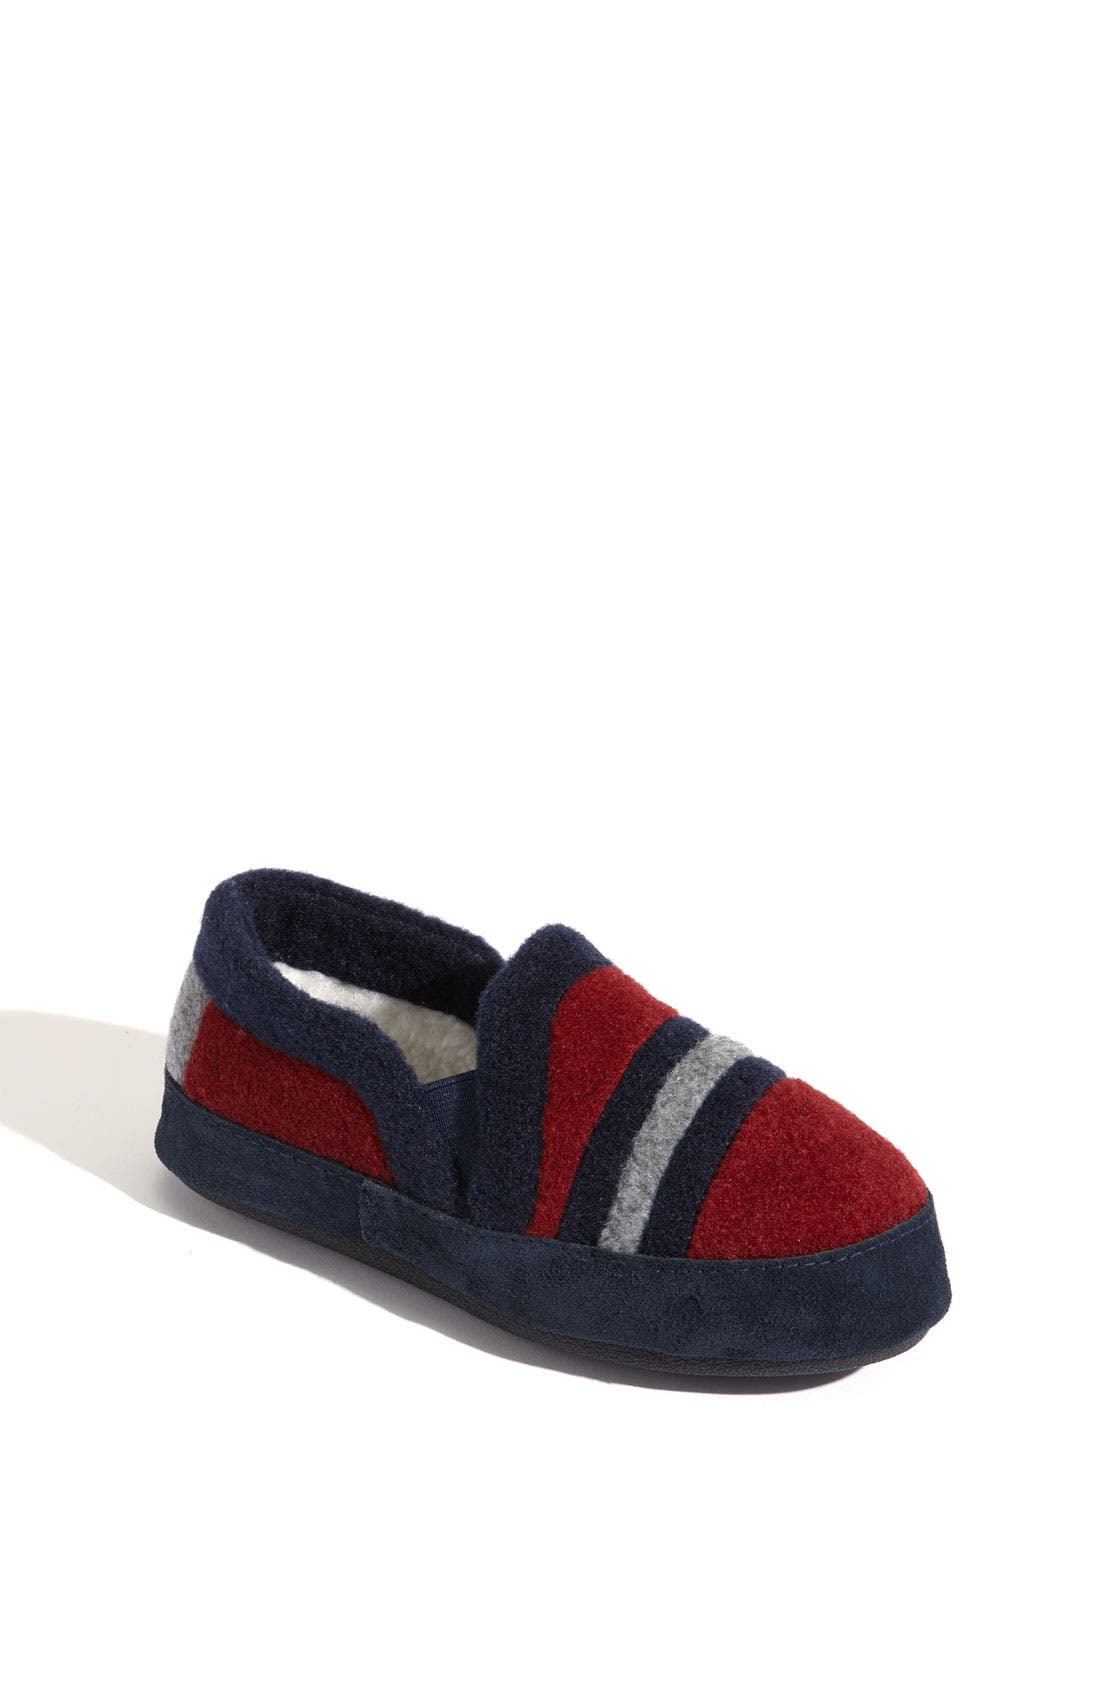 Main Image - Acorn 'Colby Moc' Slipper (Toddler, Little Kid & Big Kid)